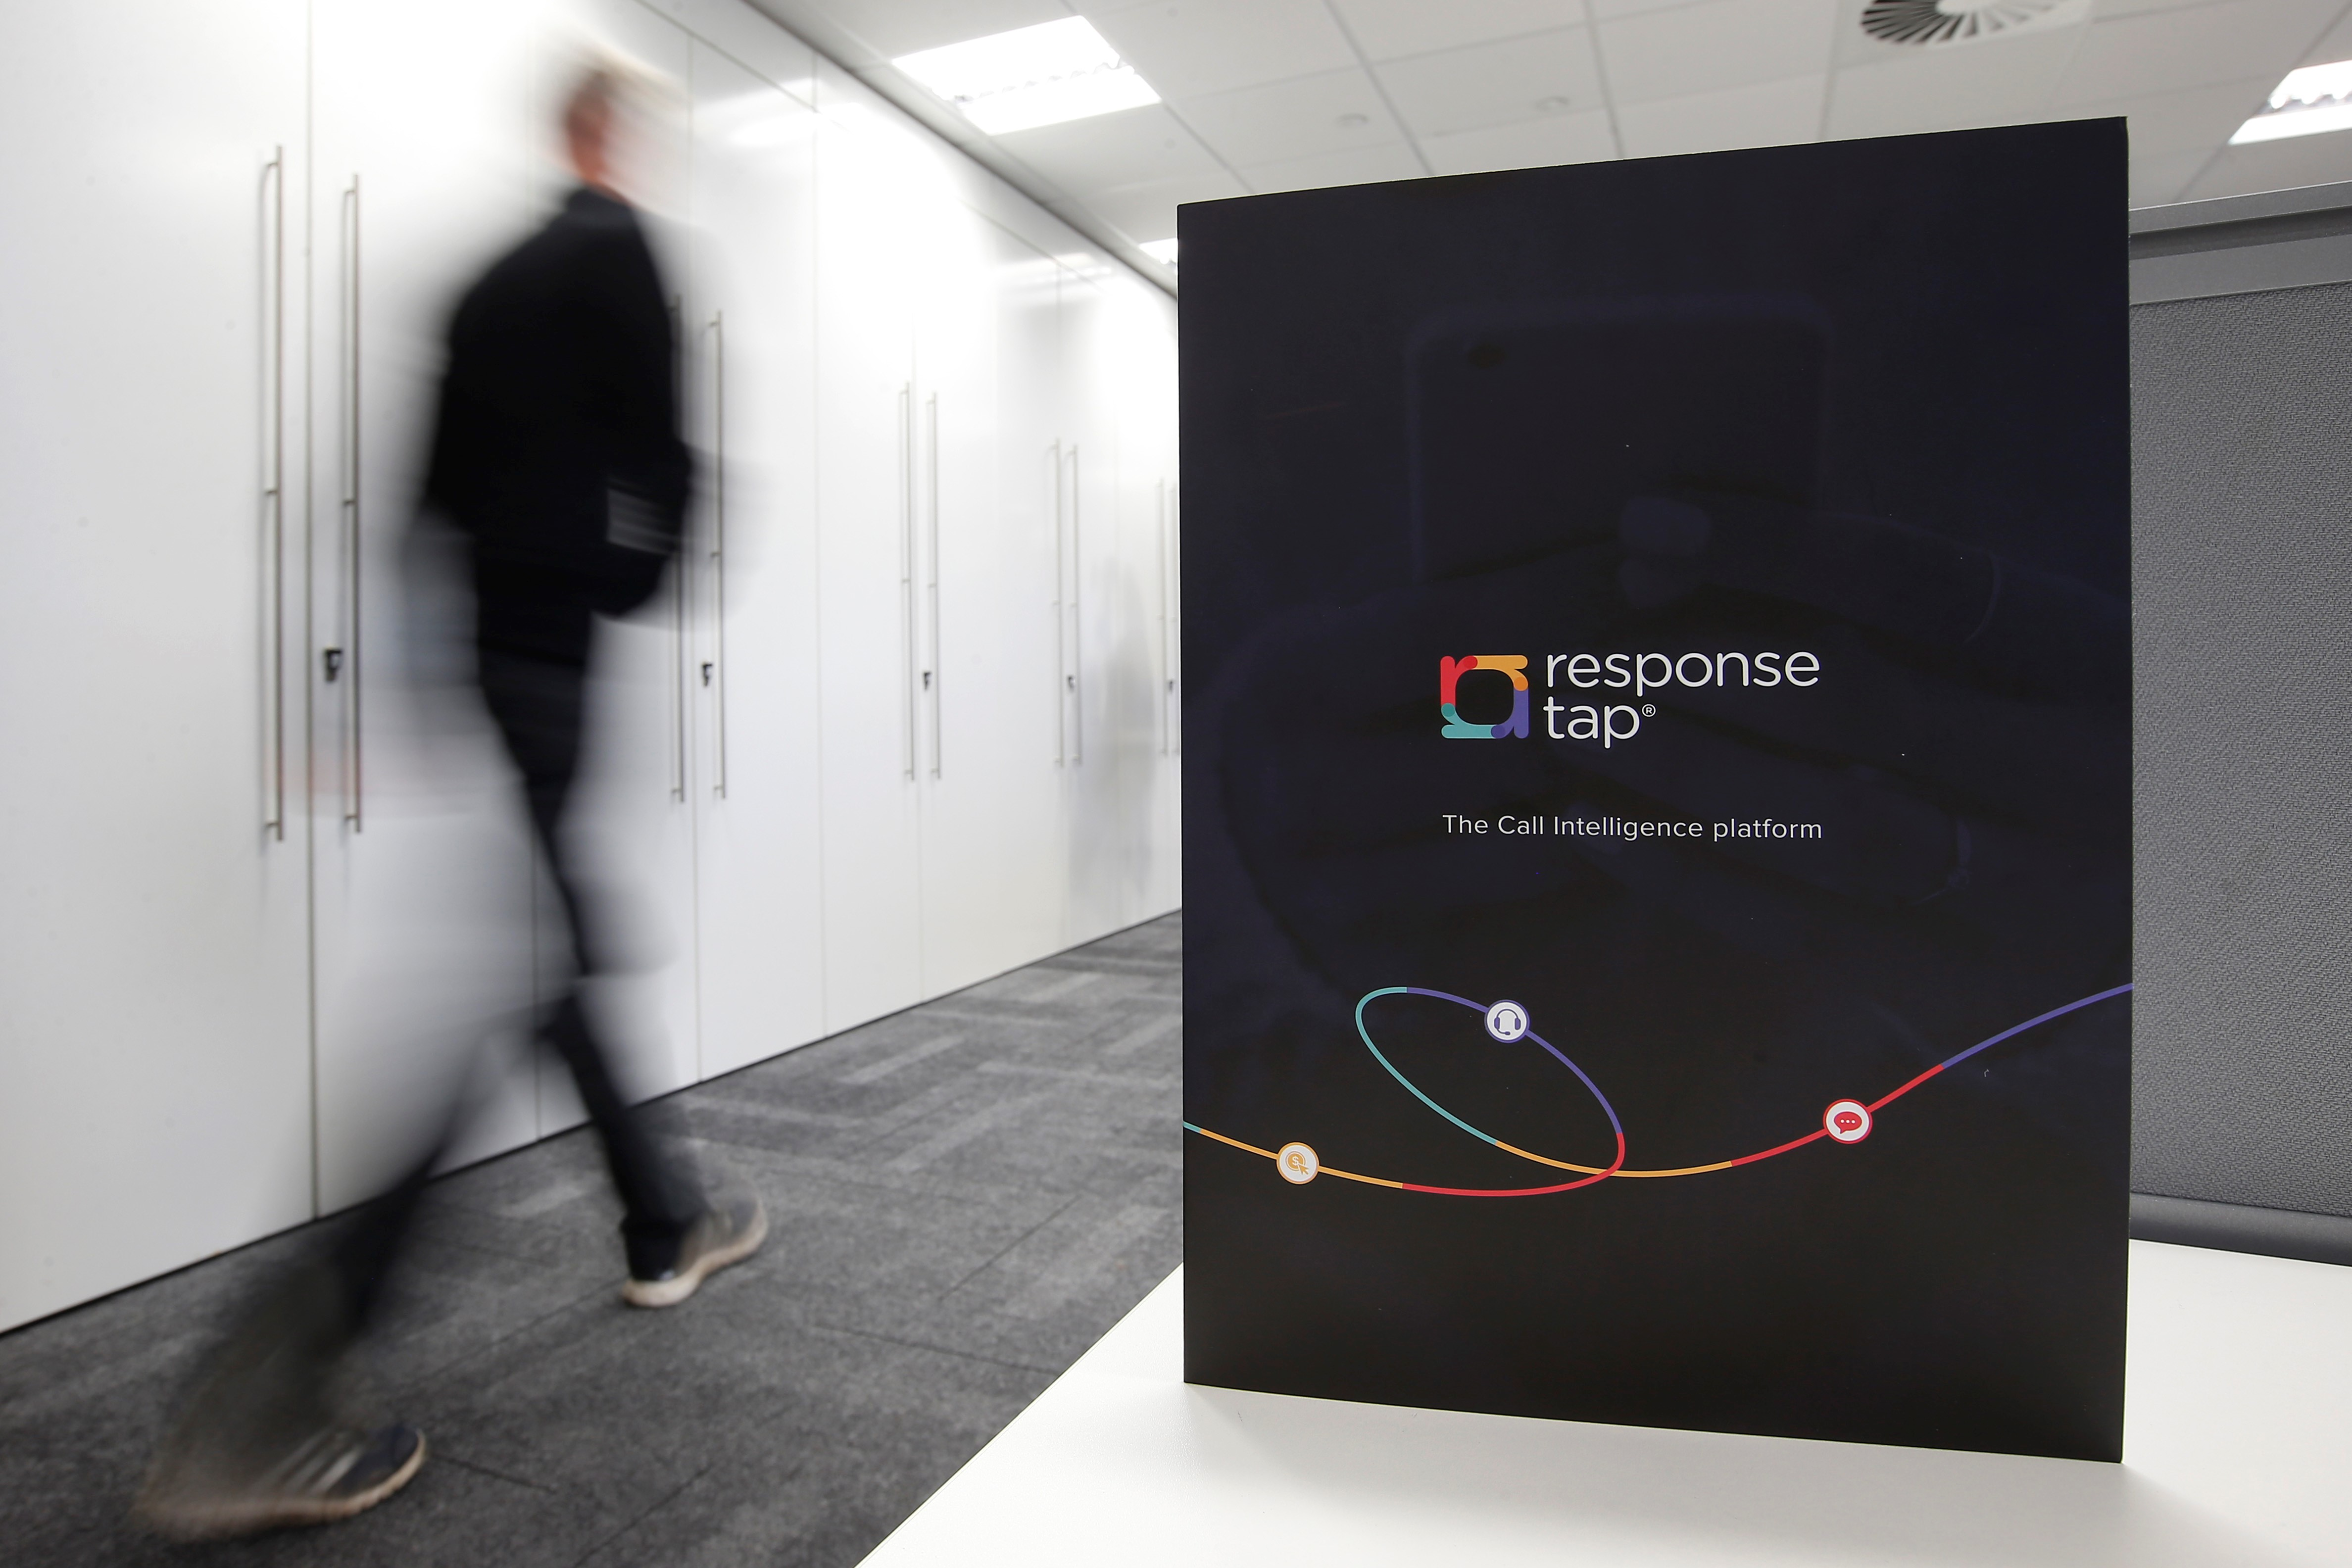 ResponseTap Appoints David Turner as the New VP of Engineering